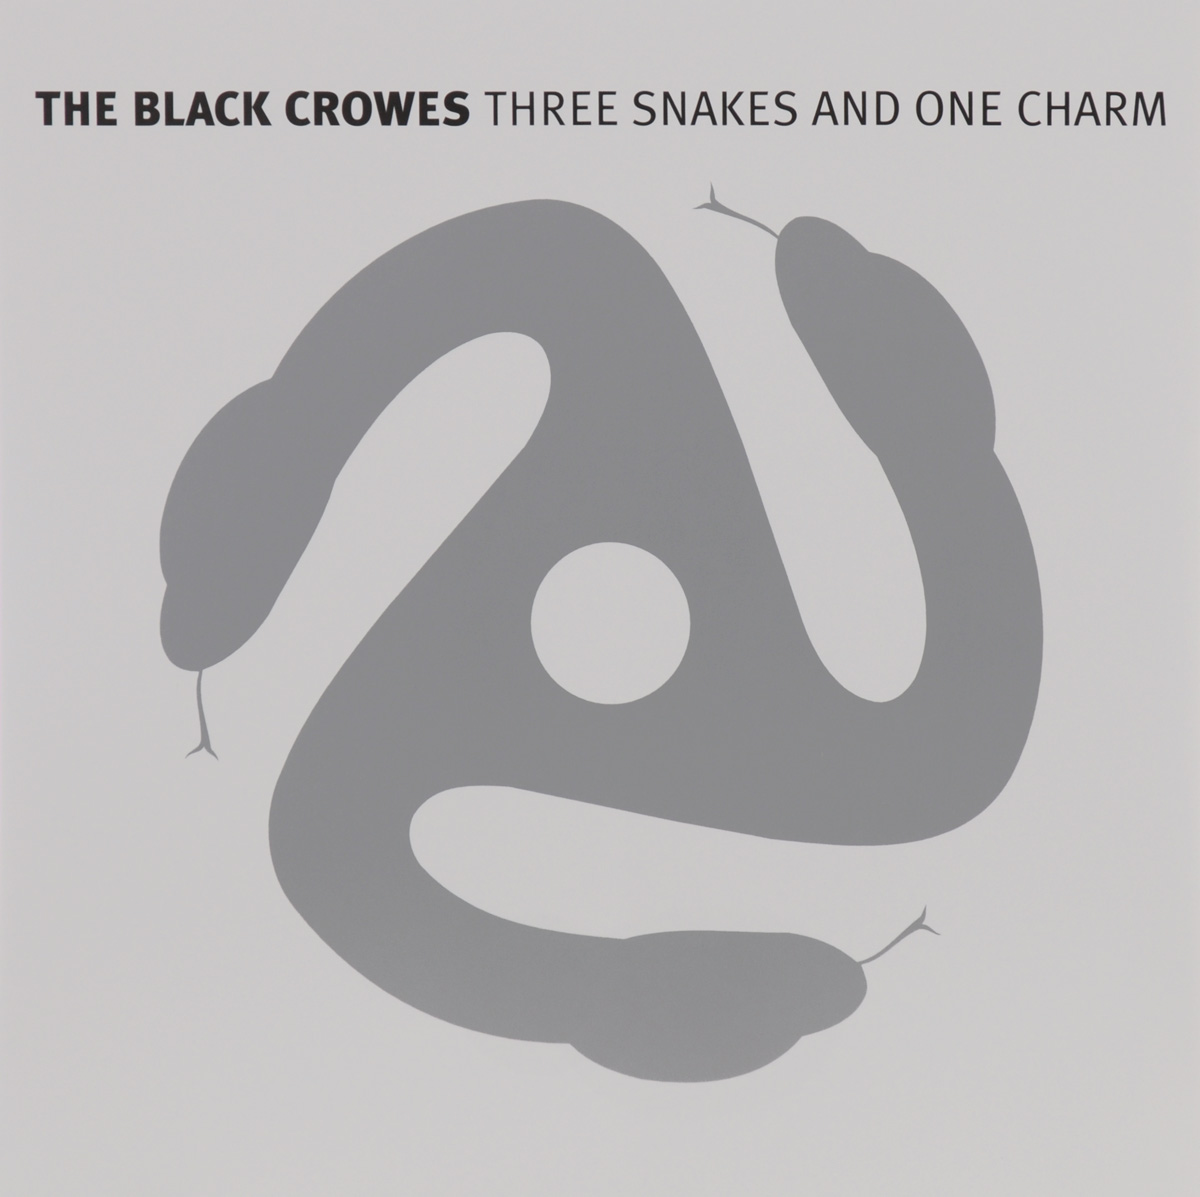 цена на The Black Crowes The Black Crowes. Three Snakes And One Charm (2 LP)